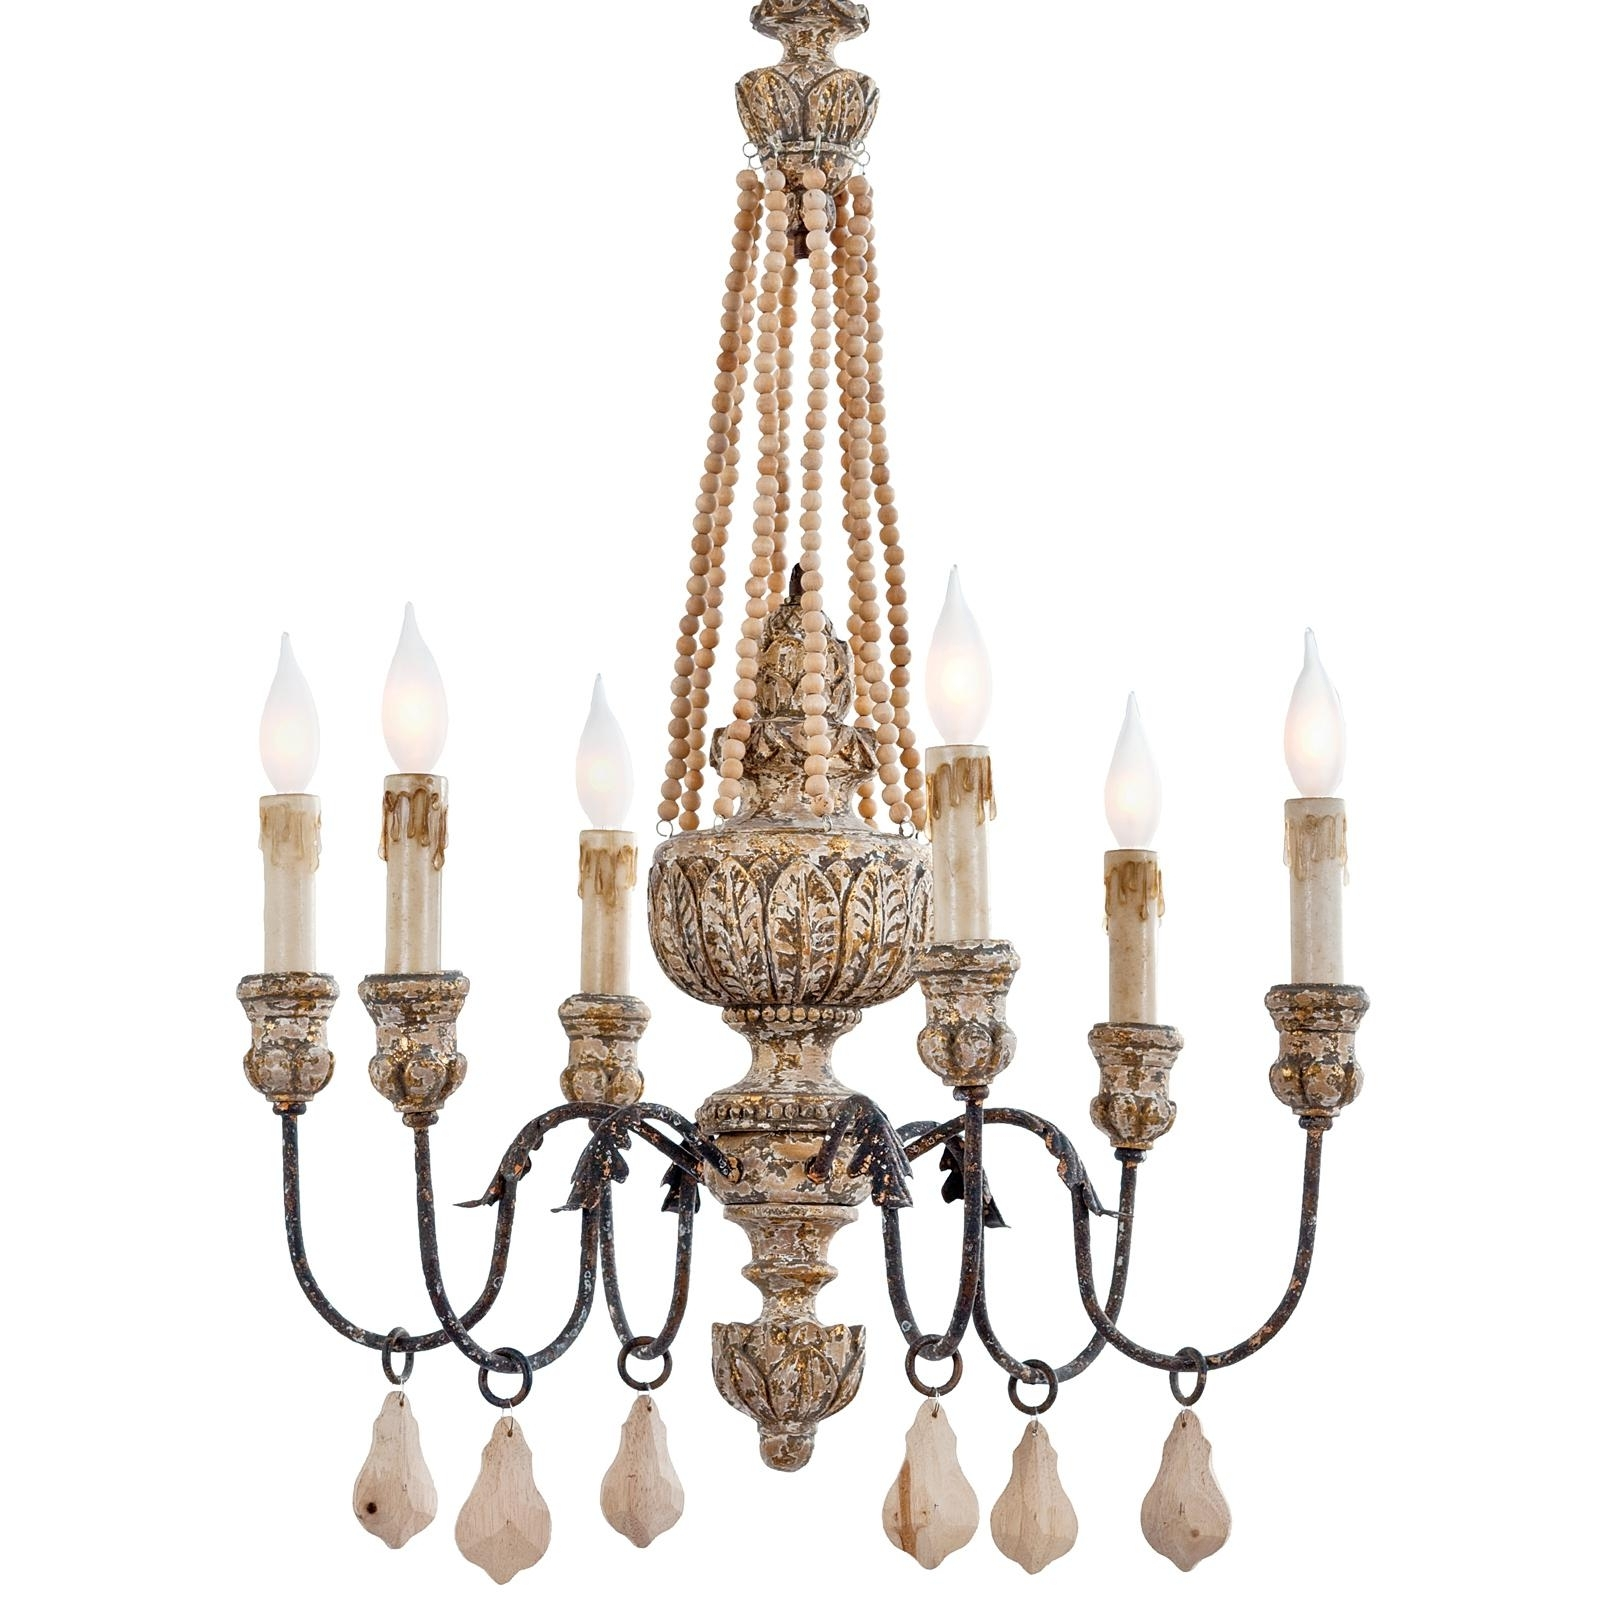 Most Popular Chandelier Accessories Throughout Lighting: Elegant Wooden Chandeliers For Home Accessories Ideas With (View 4 of 20)